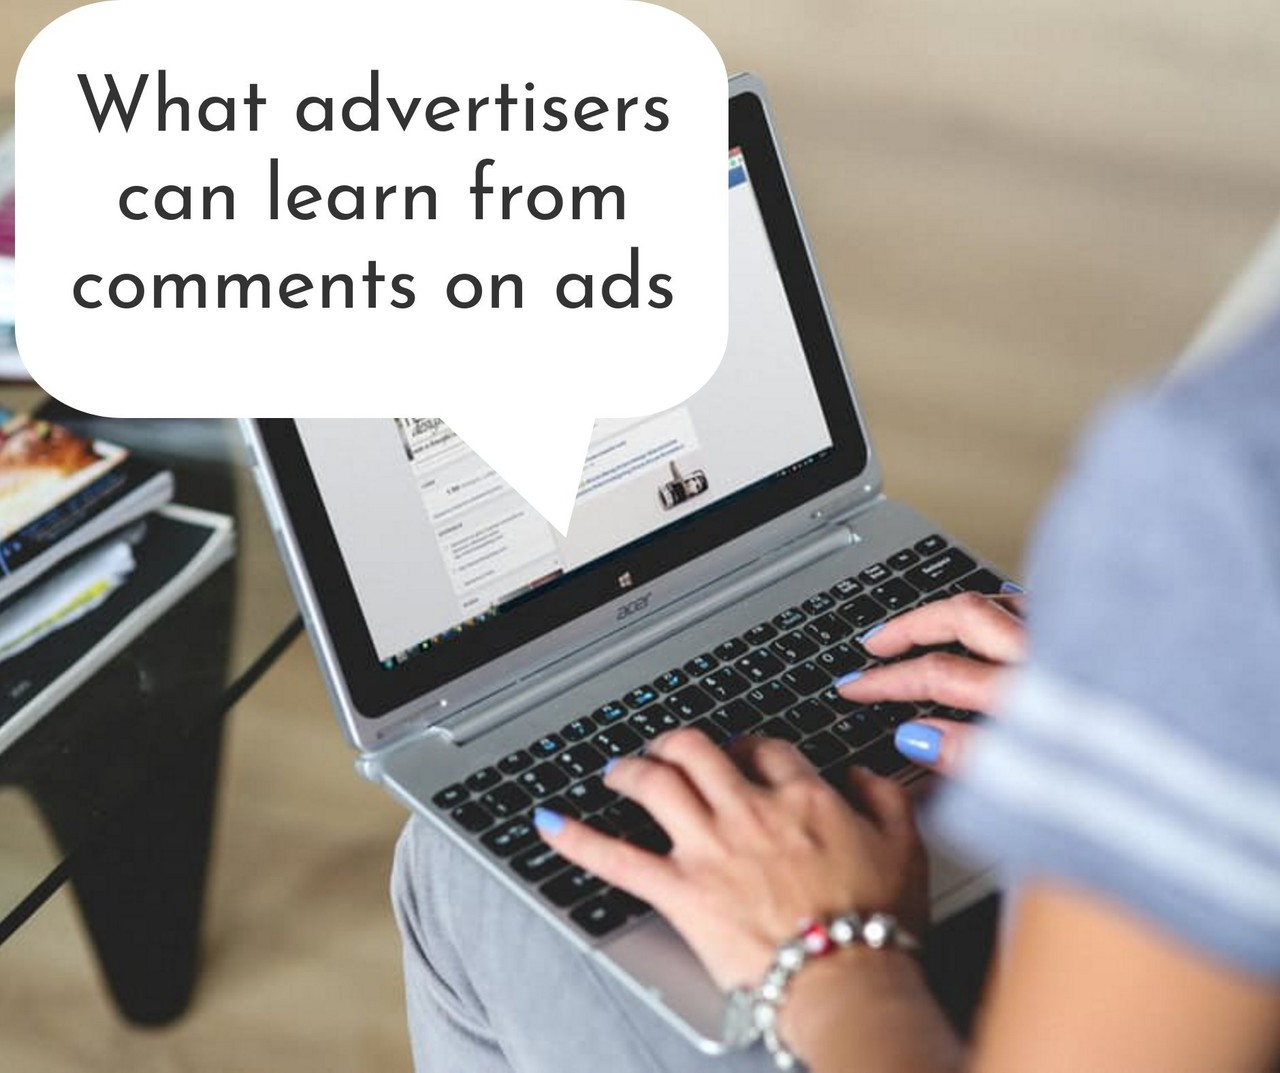 What advertisers can learn from comments on ads